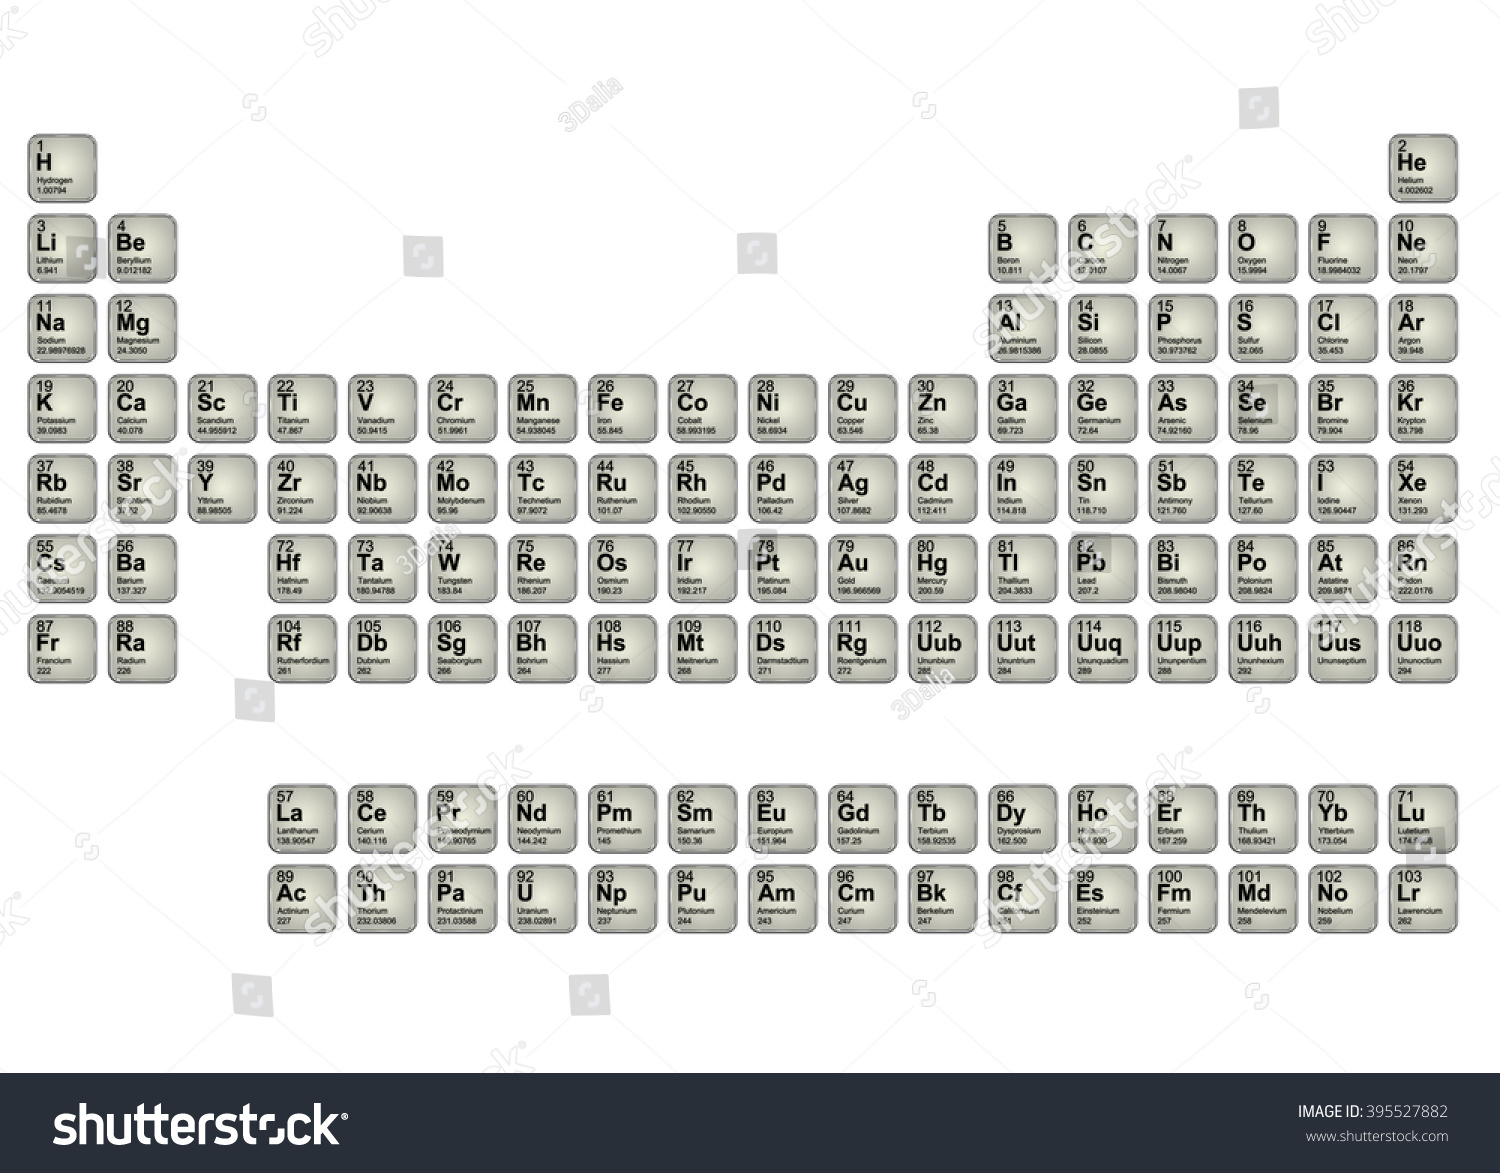 Pictorial diagram periodic table elements stock illustration pictorial diagram of the periodic table of elements urtaz Image collections